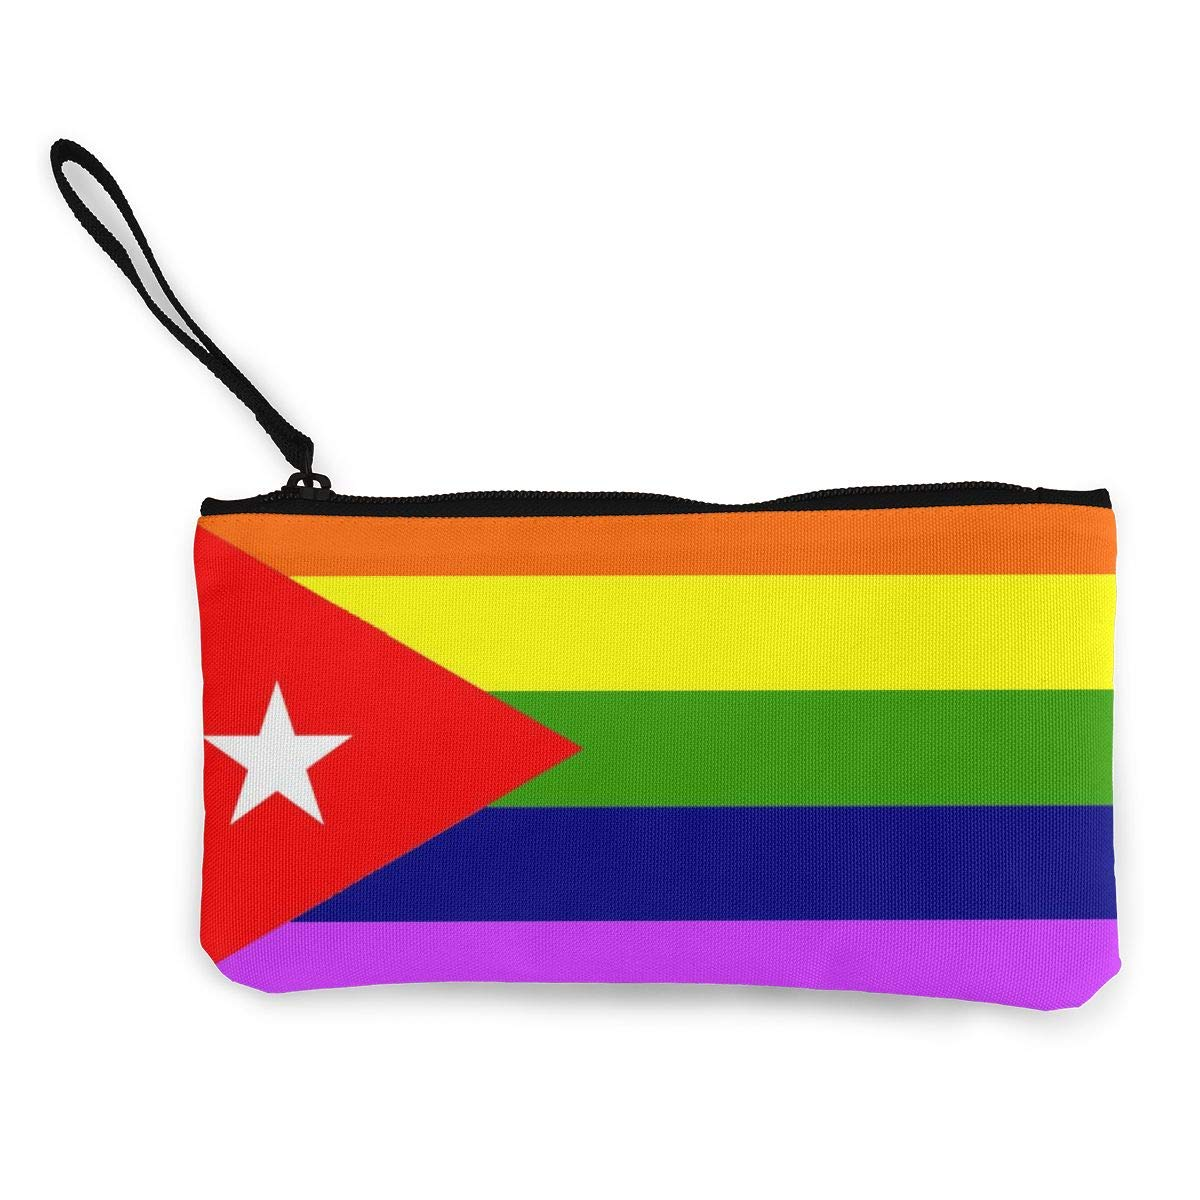 Maple Memories LGBT Gay Pride Flag Of Cuba Portable Canvas Coin Purse Change Purse Pouch Mini Wallet Gifts For Women Girls